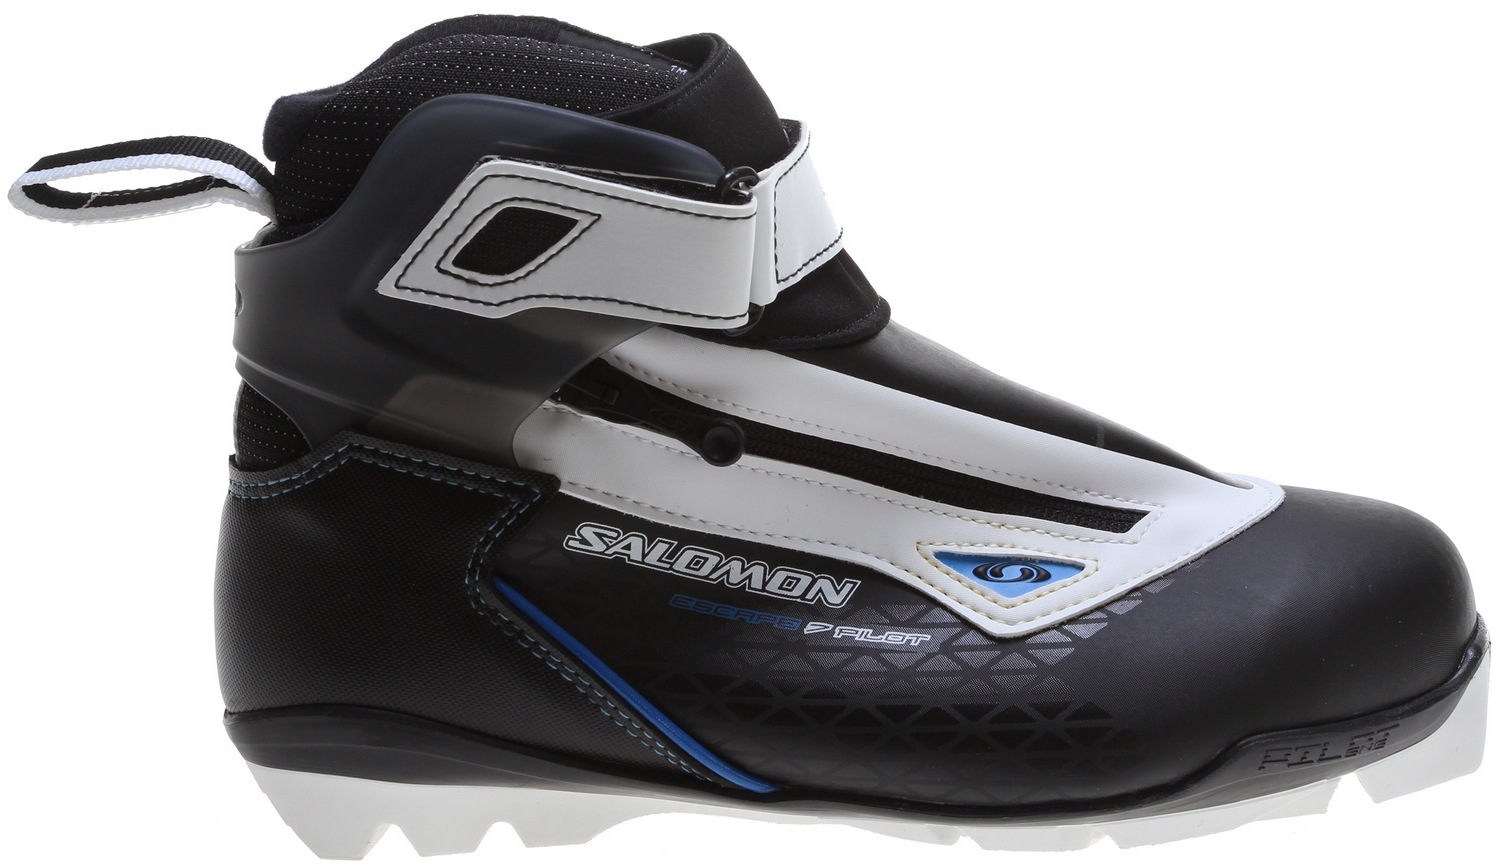 Salomon Men S Escape 7 Pilot Cf Ski Boot Fontana Sports